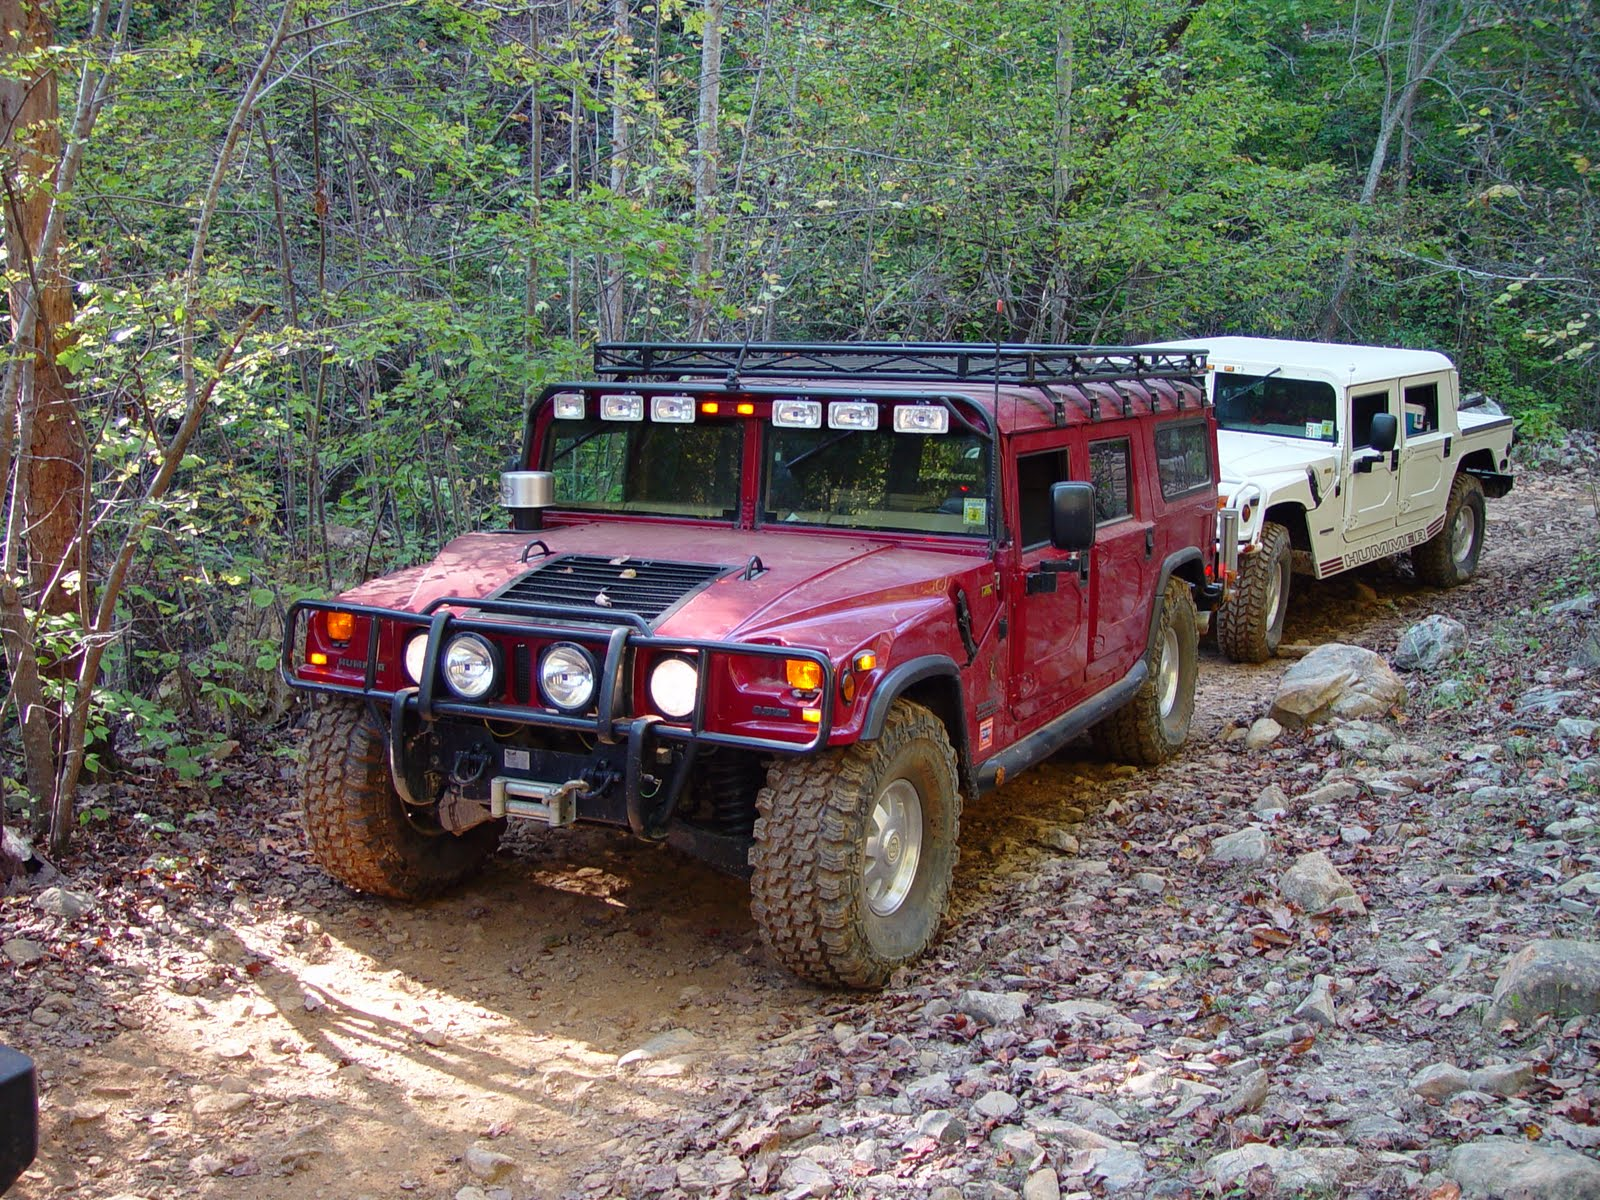 Mobile Survival Vehicle : Bug out survival vehicles and shelters update